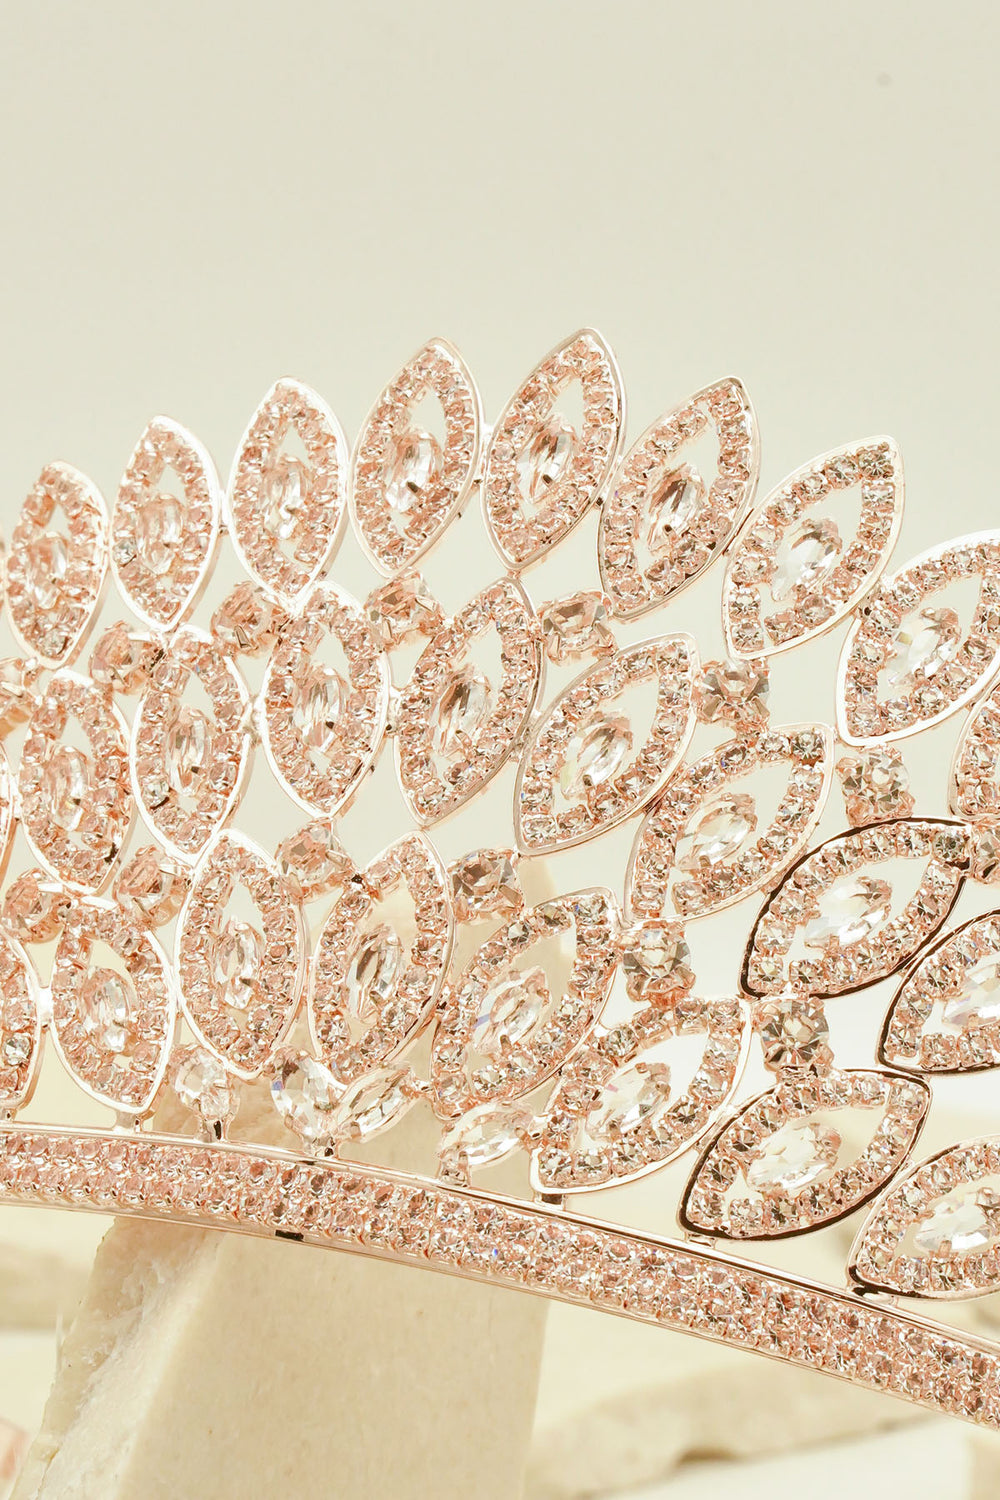 FEATHER STYLE DIAMANTE AND ZIRCON TIARA FOR BRIDAL WEDDING AND PARTIES BY NARIANNA